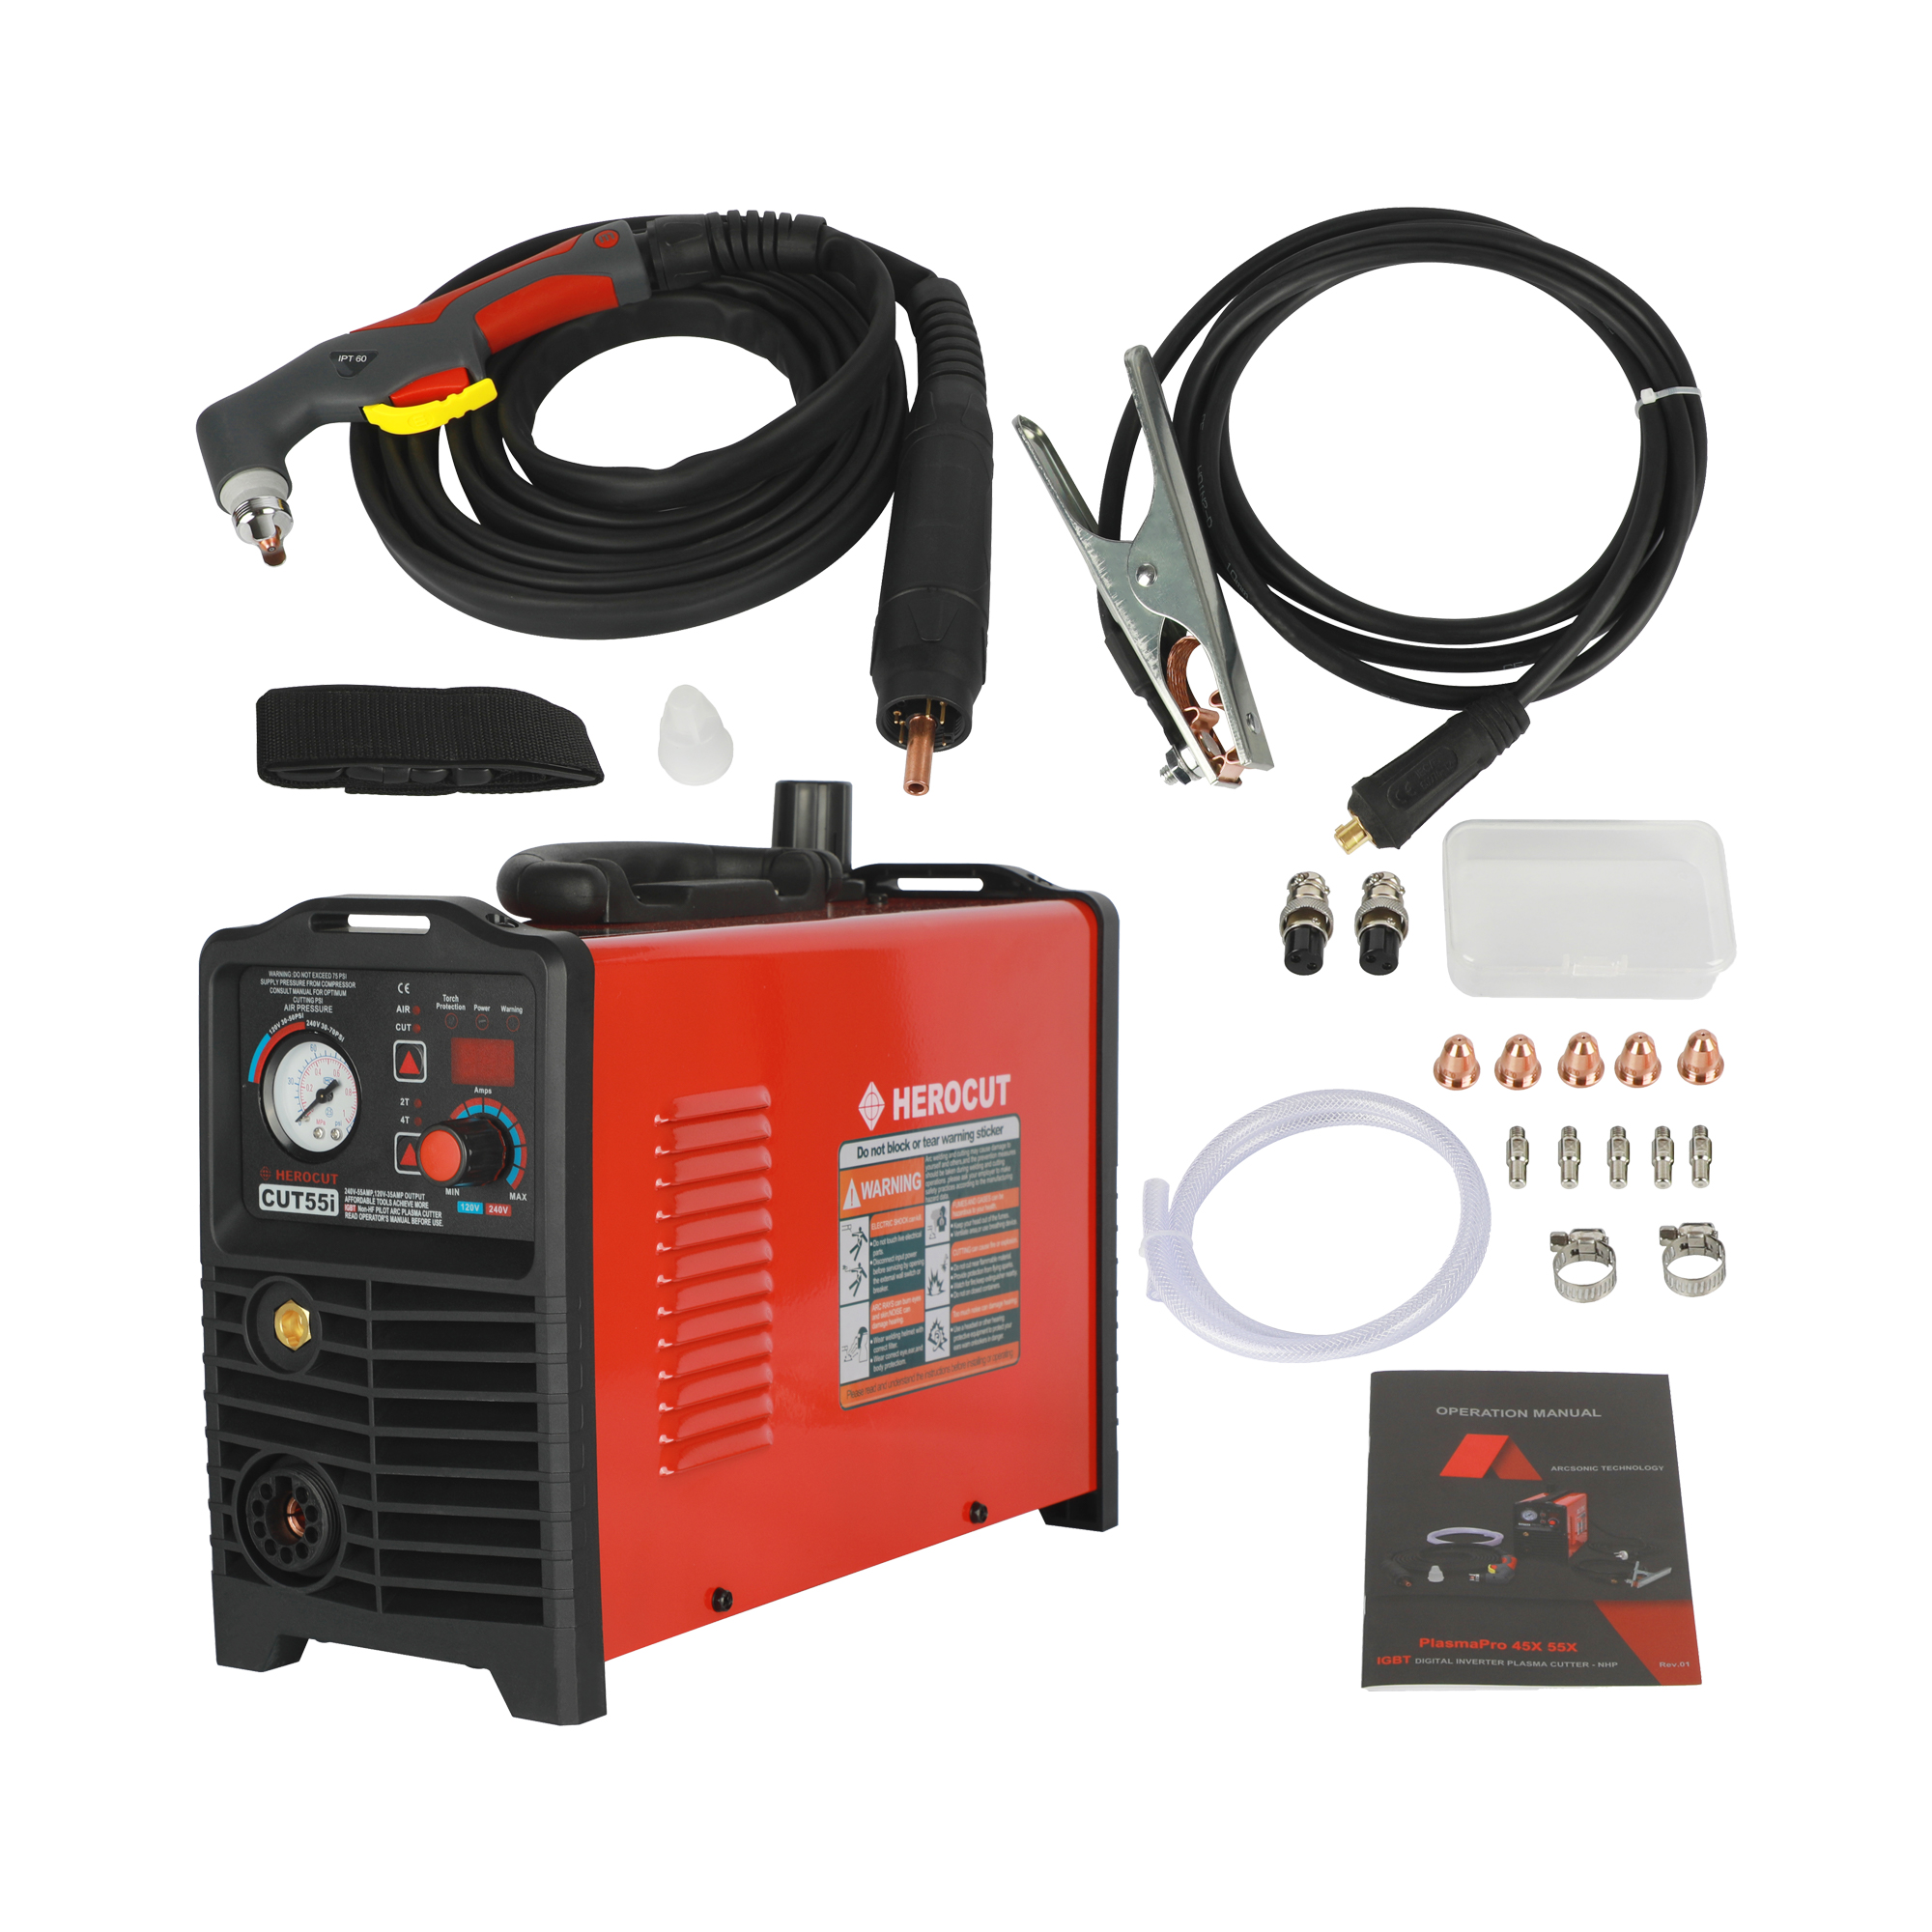 HC6000 220V CNC Plasma Cutter HeroCut HC6000 220v 60Amps Non-HF Blowback Pilot Arc Non-Touch Arc Starting Inverter 50//60Hz Clean Cut 3//4 Easy Work With CNC table.